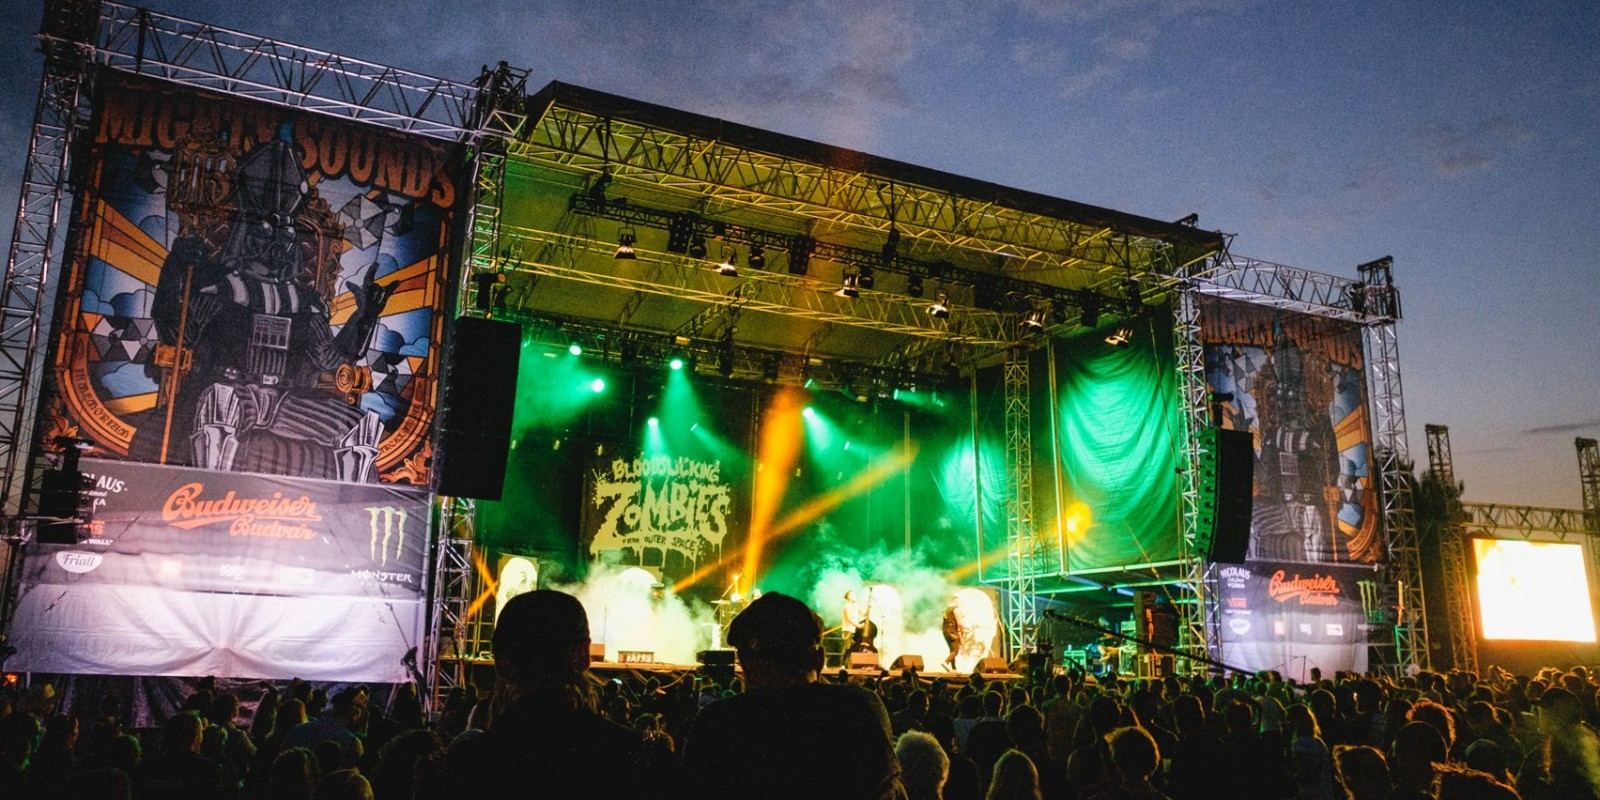 Mighty Sounds Festival in Tábor